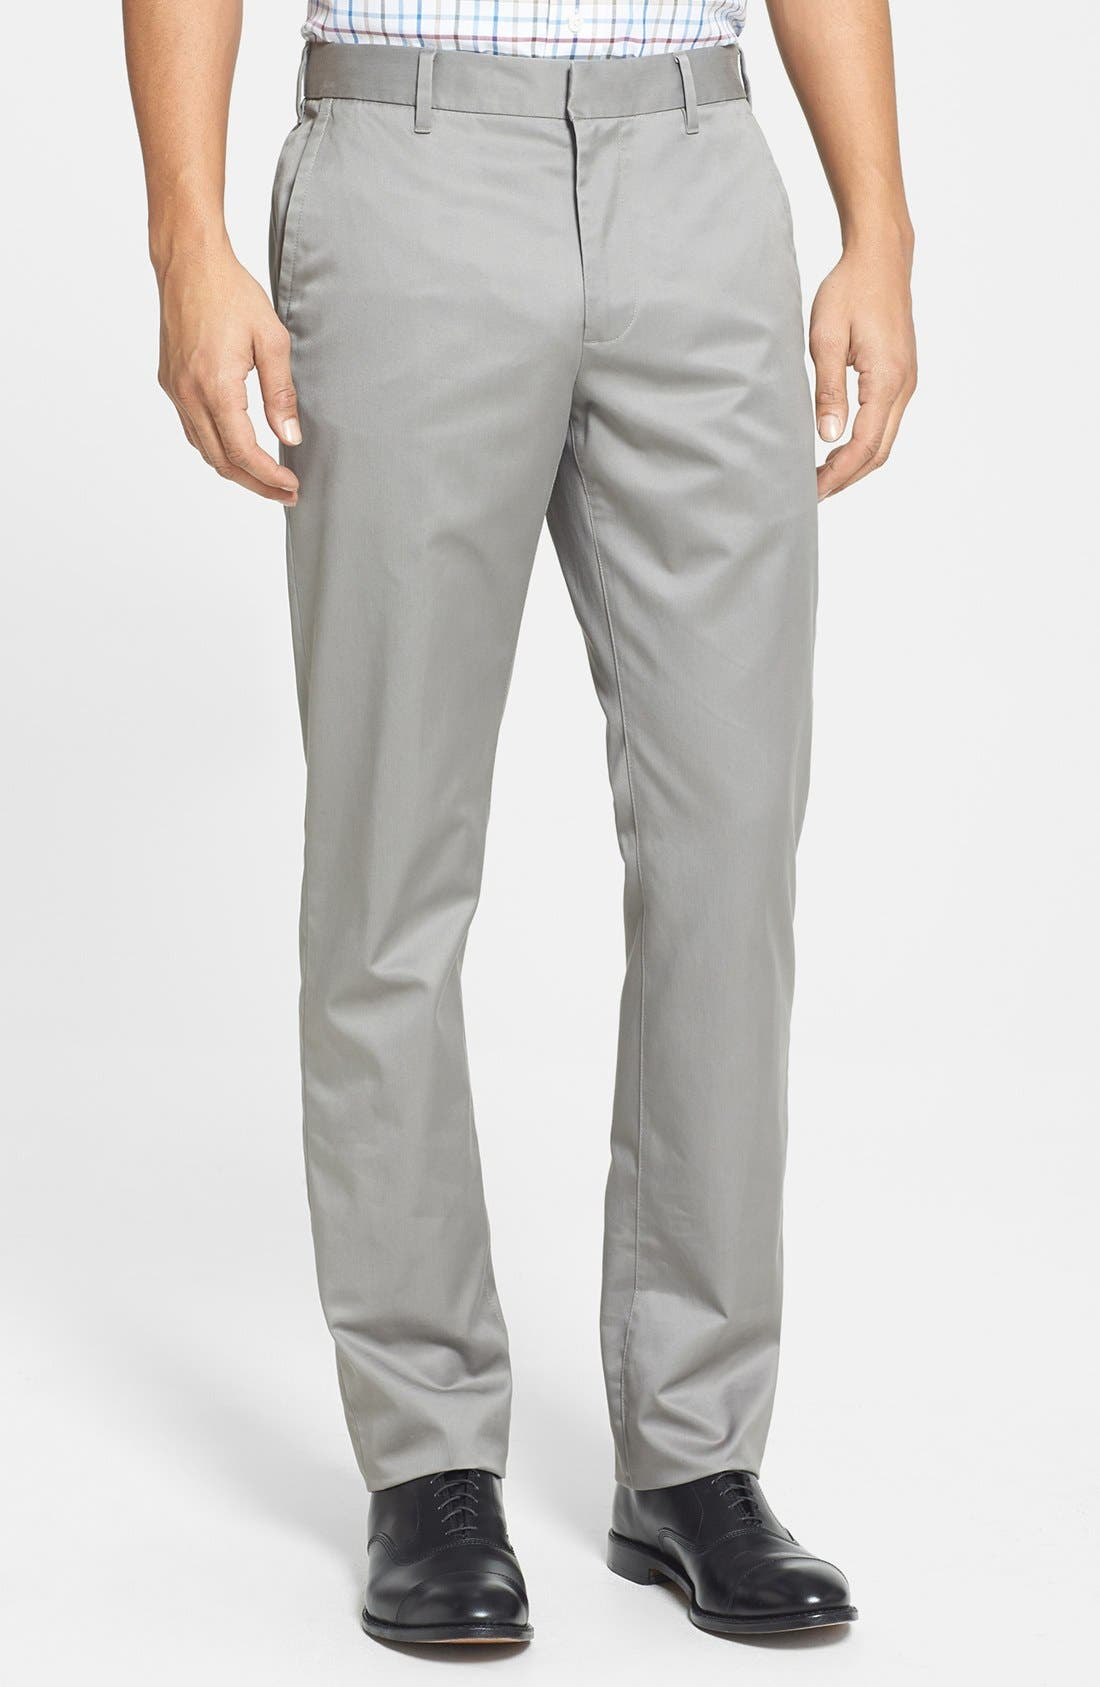 Alternate Image 1 Selected - Bonobos 'Weekday Warriors' Non-Iron Slim Fit Cotton Chinos